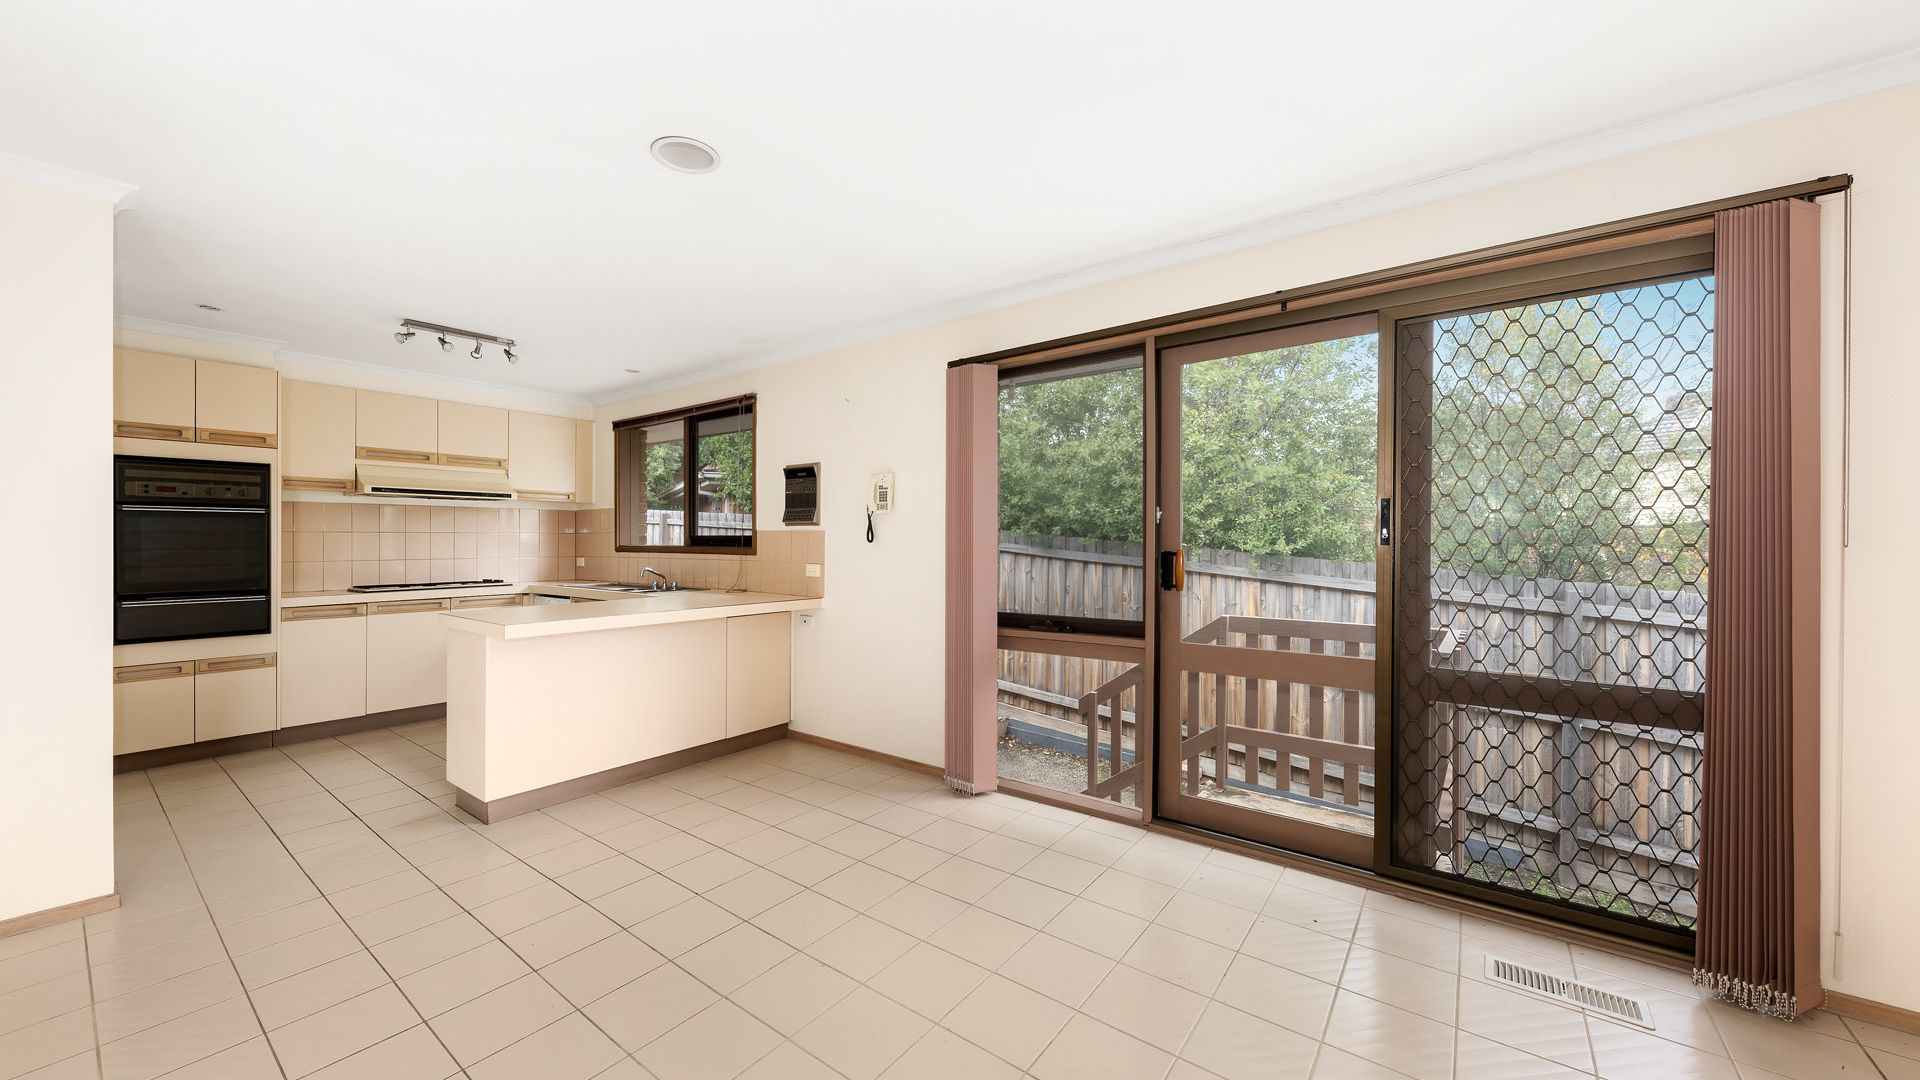 1/5 County Close, Wheelers Hill VIC 3150, Image 2